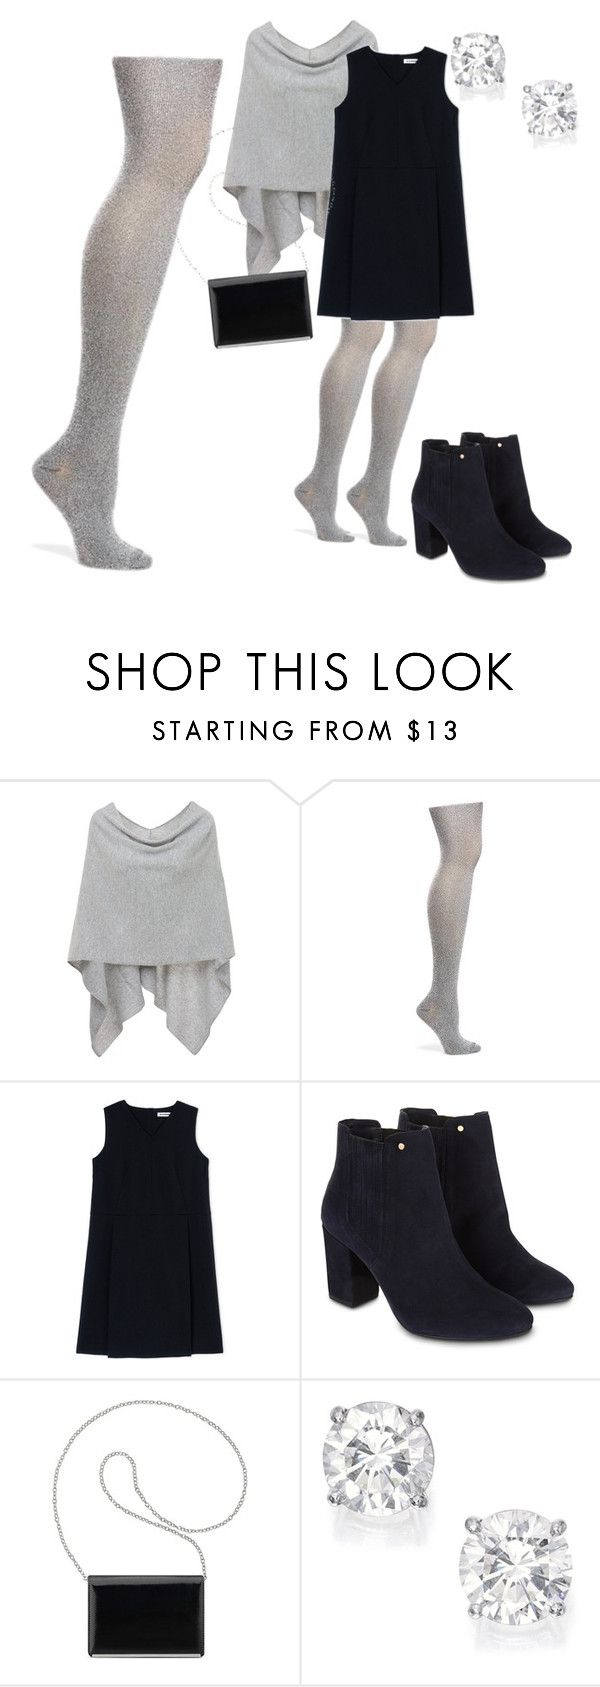 """Sparkly silver tights"" by zoilashopper on Polyvore featuring Minnie Rose, Old Navy, Jil Sander, Monsoon and Nine West"